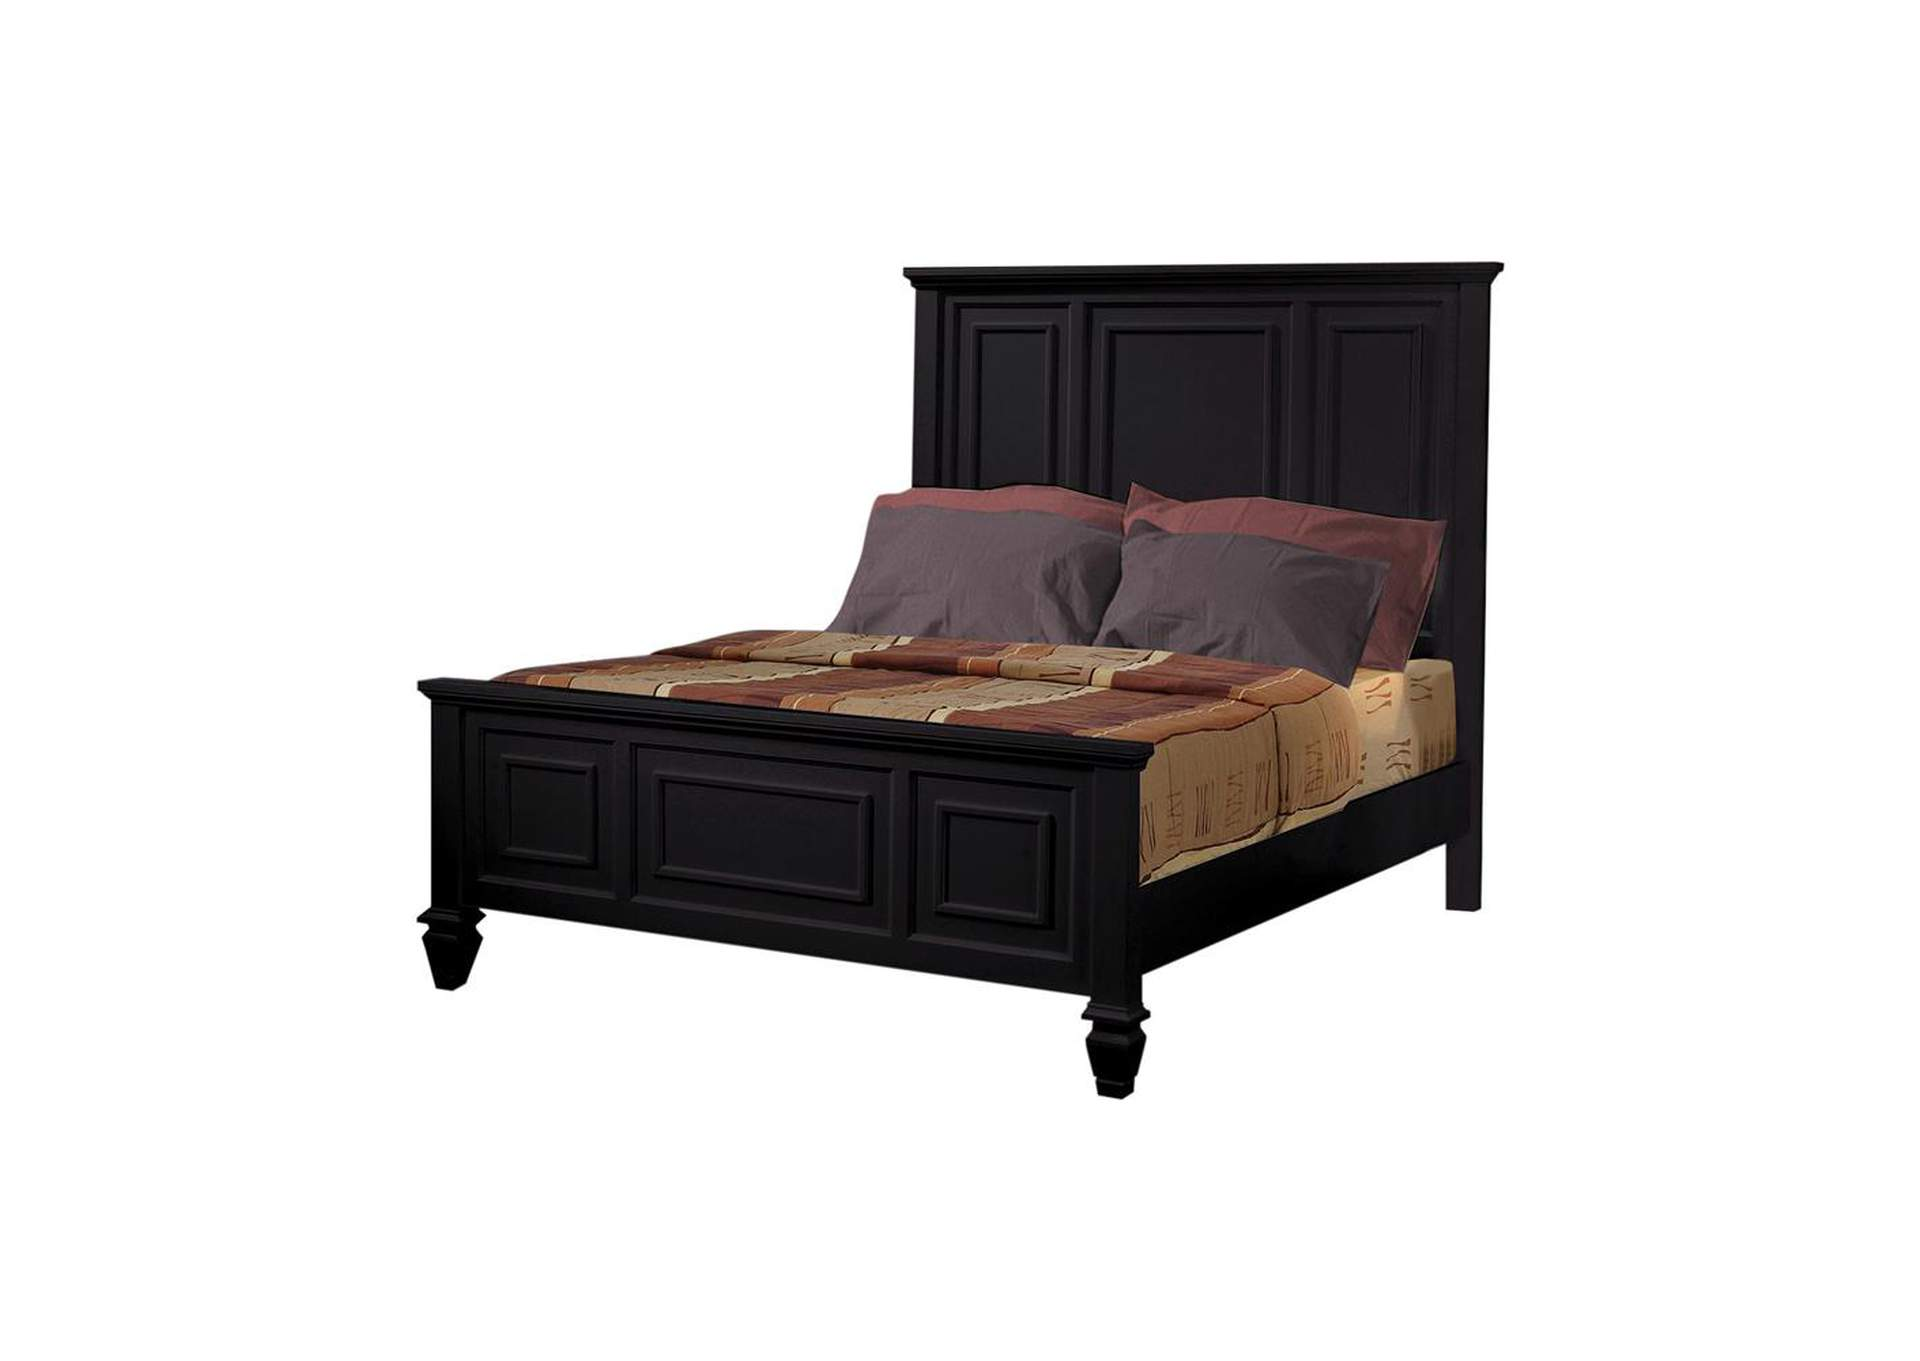 Sandy Beach Black Eastern King Storage Bed,Coaster Furniture